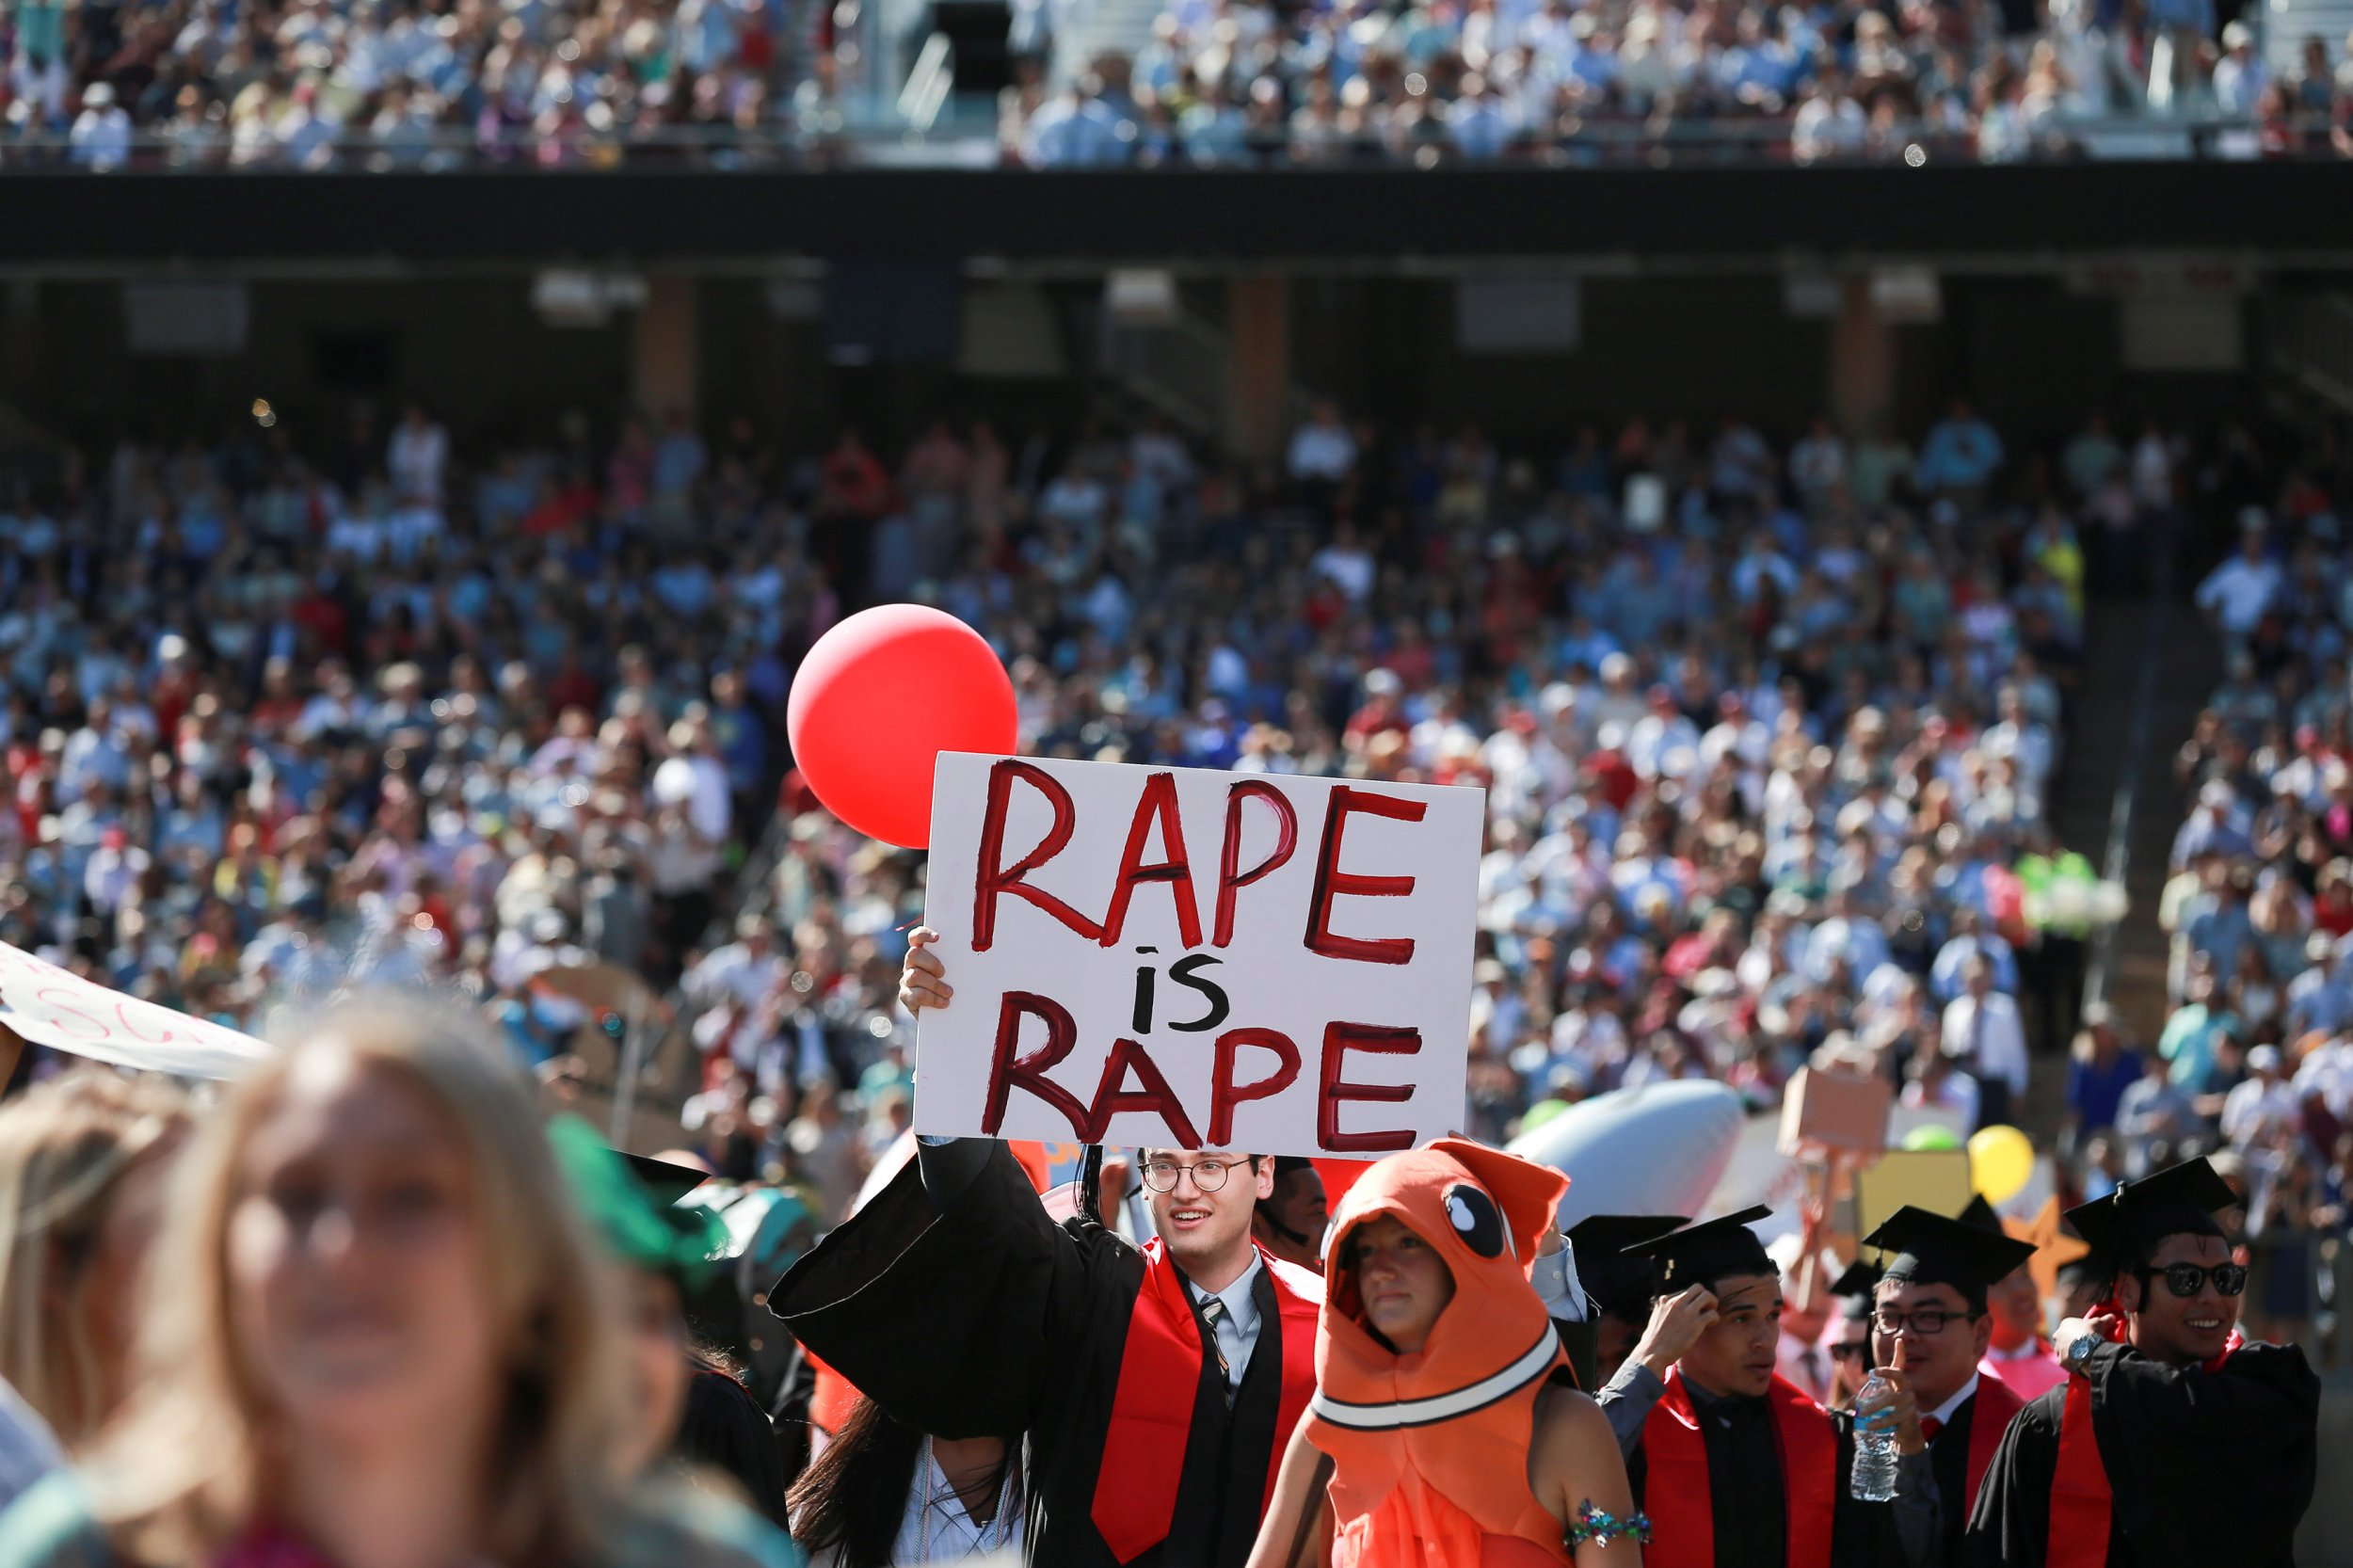 Anti-rape protest sign